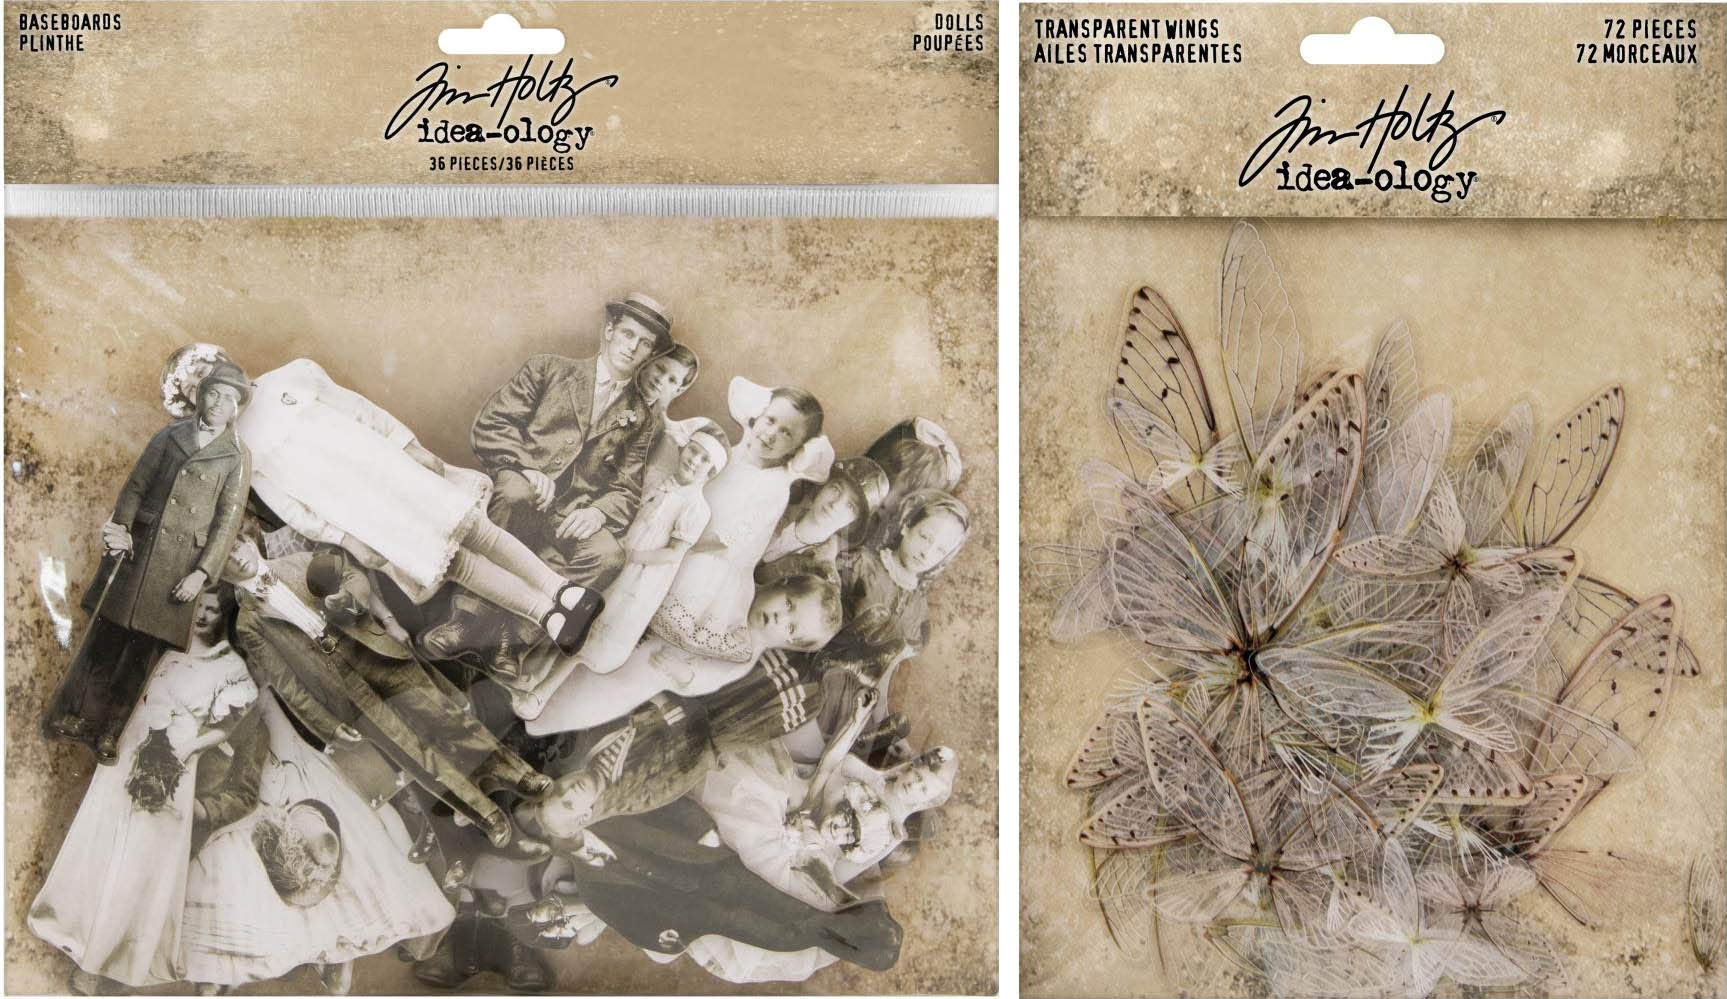 Idea-ology Tim Holtz Baseboard Dolls and Transparent Wings - 2 Item Bundle